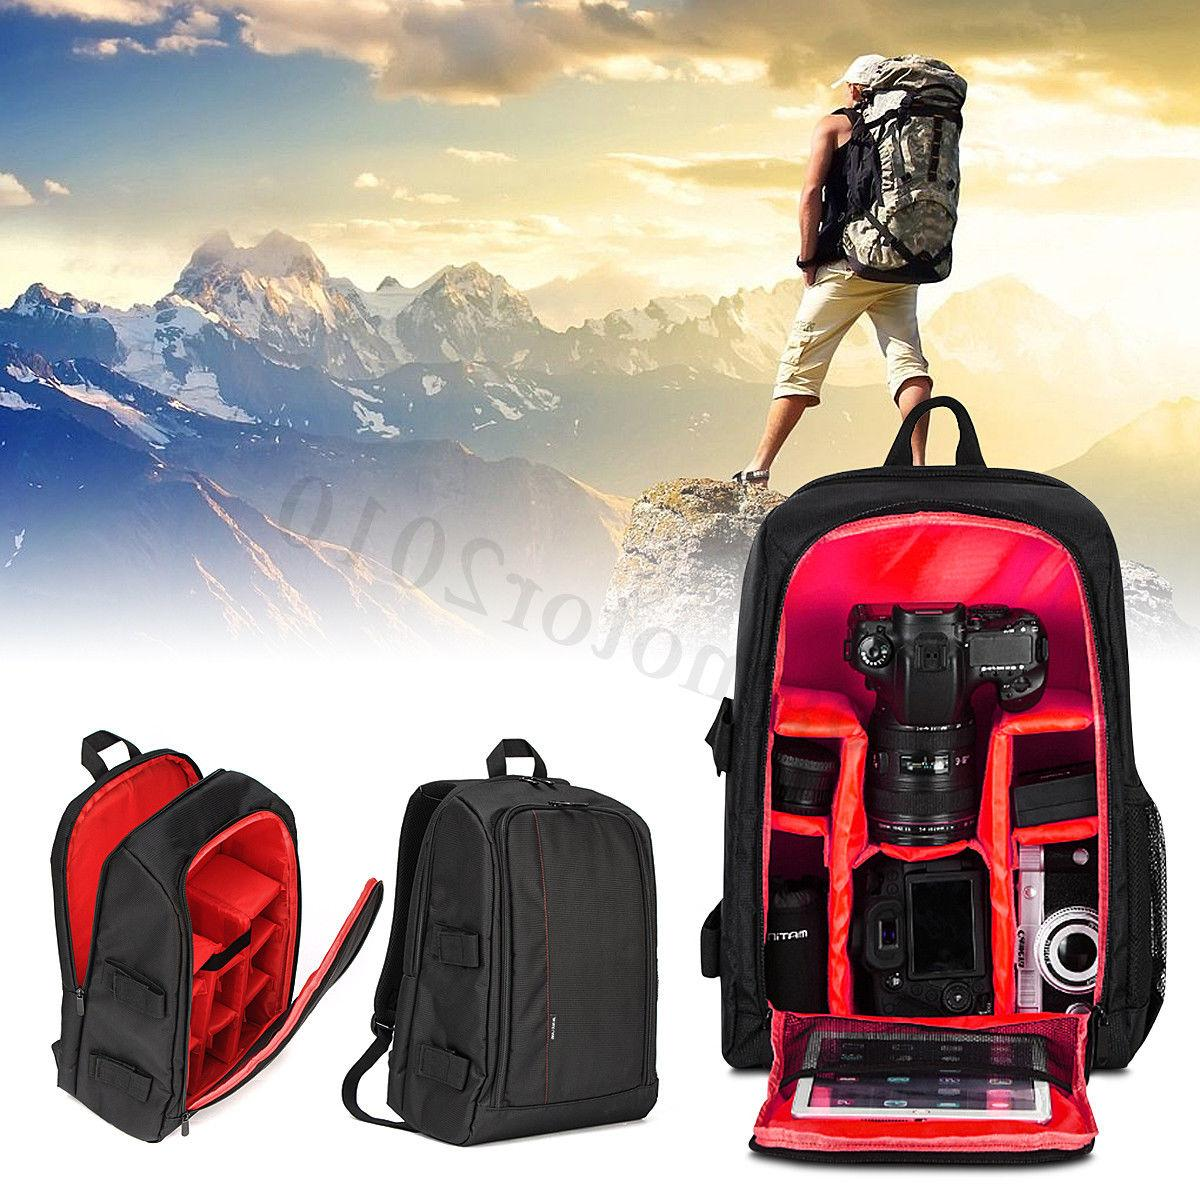 DSLR Camera Waterproof Backpack Shoulder Bag Canon For